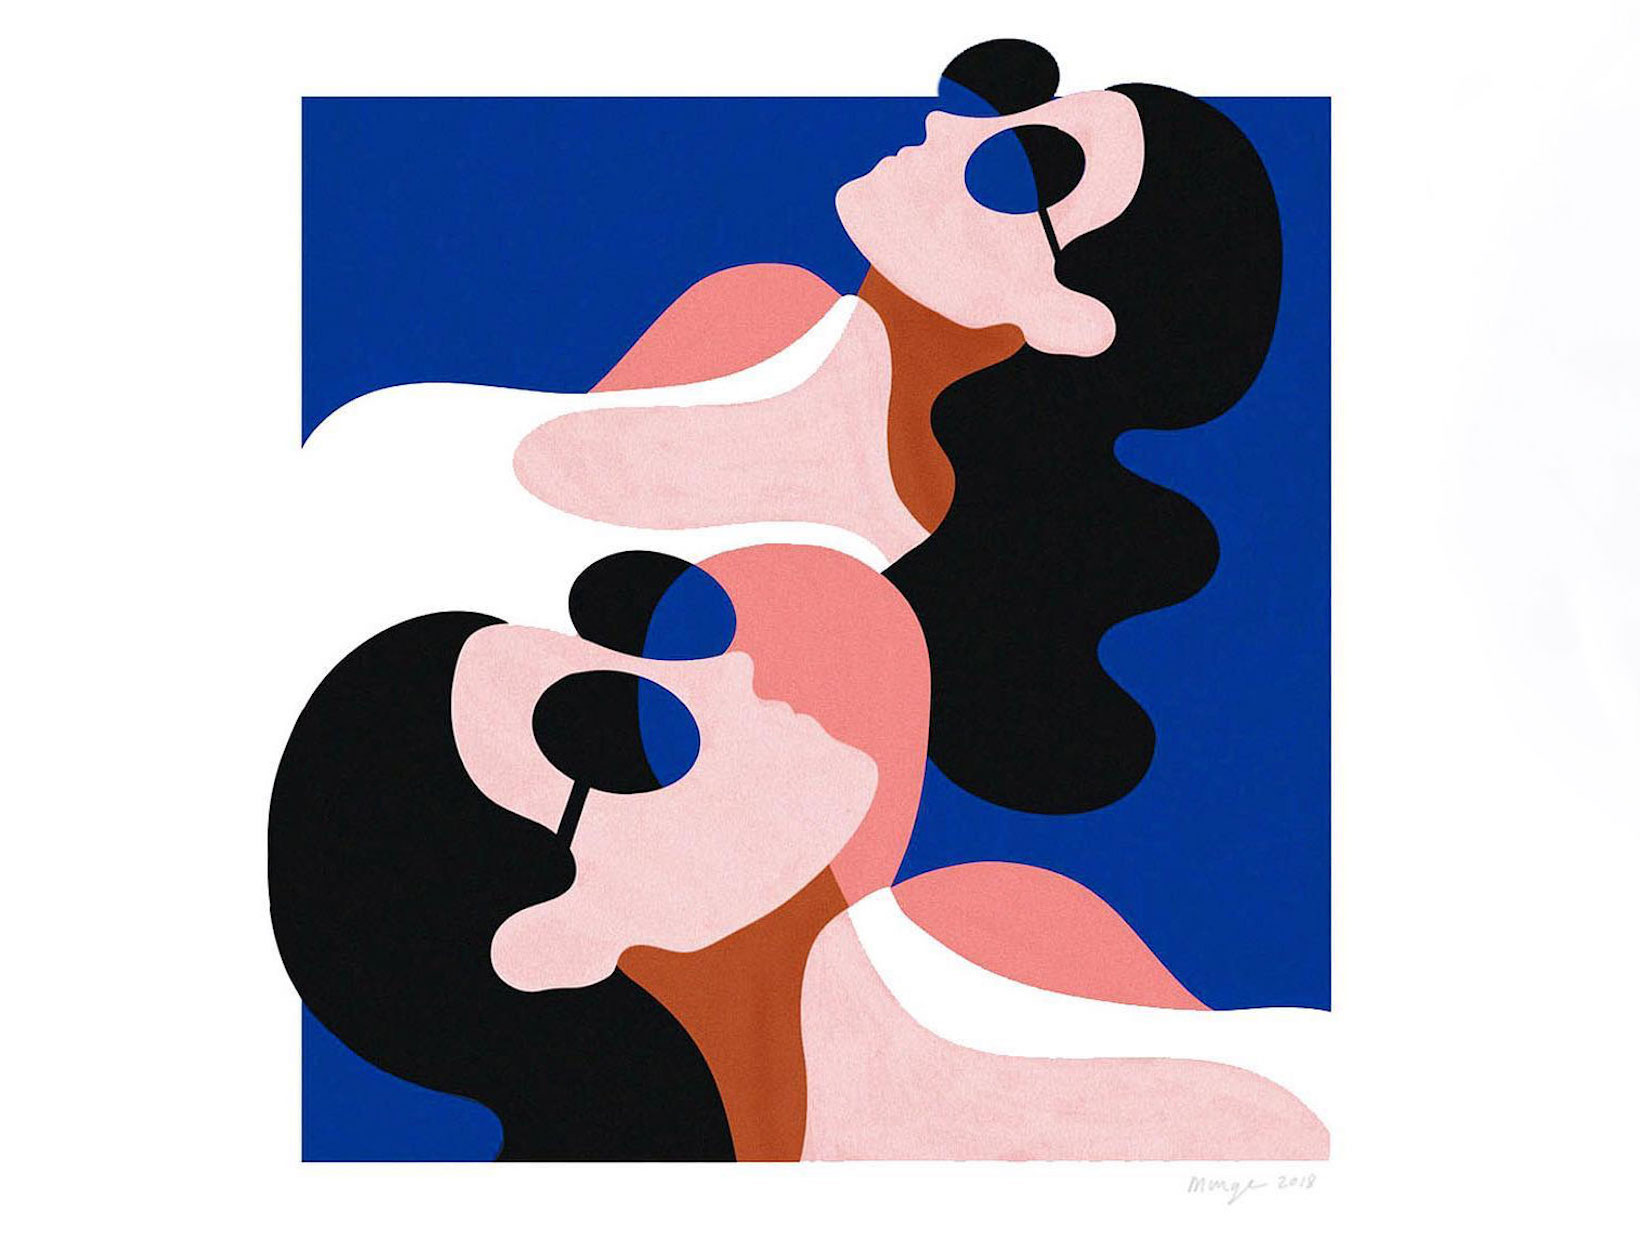 hero image illustration two women laying down in sunglasses